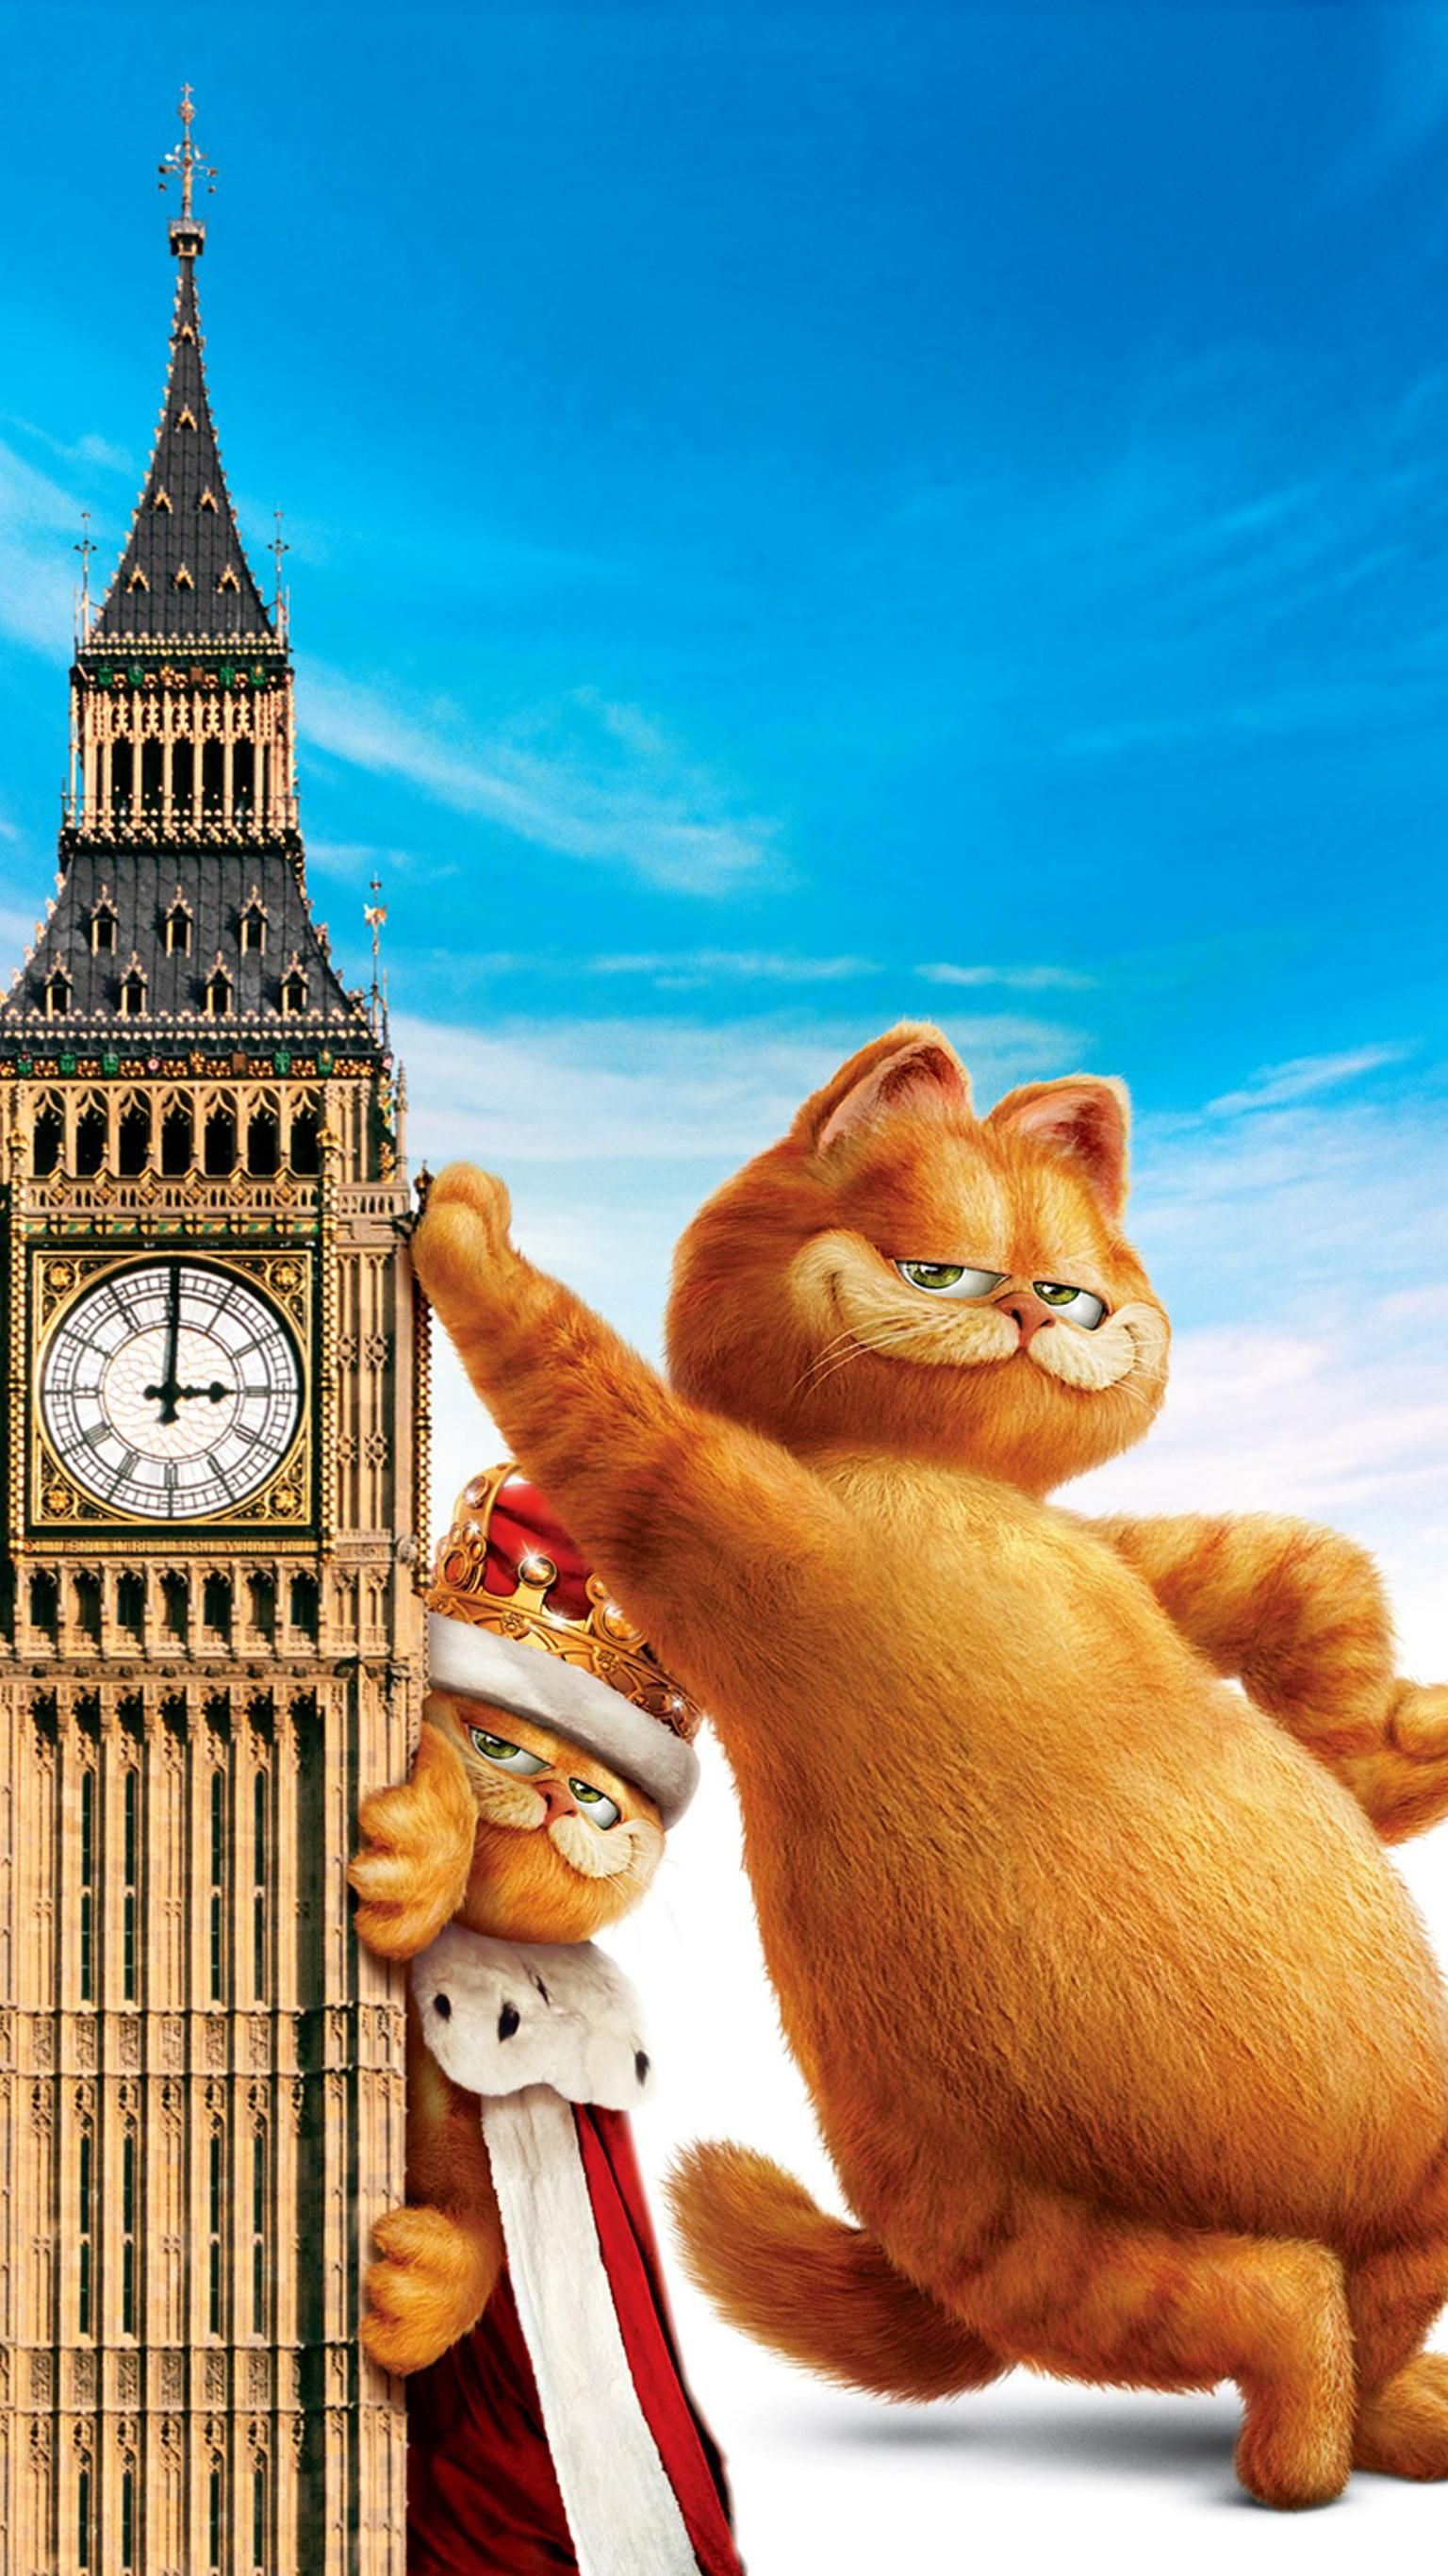 Garfield A Tail of Two Kitties (2006) Phone Wallpaper in